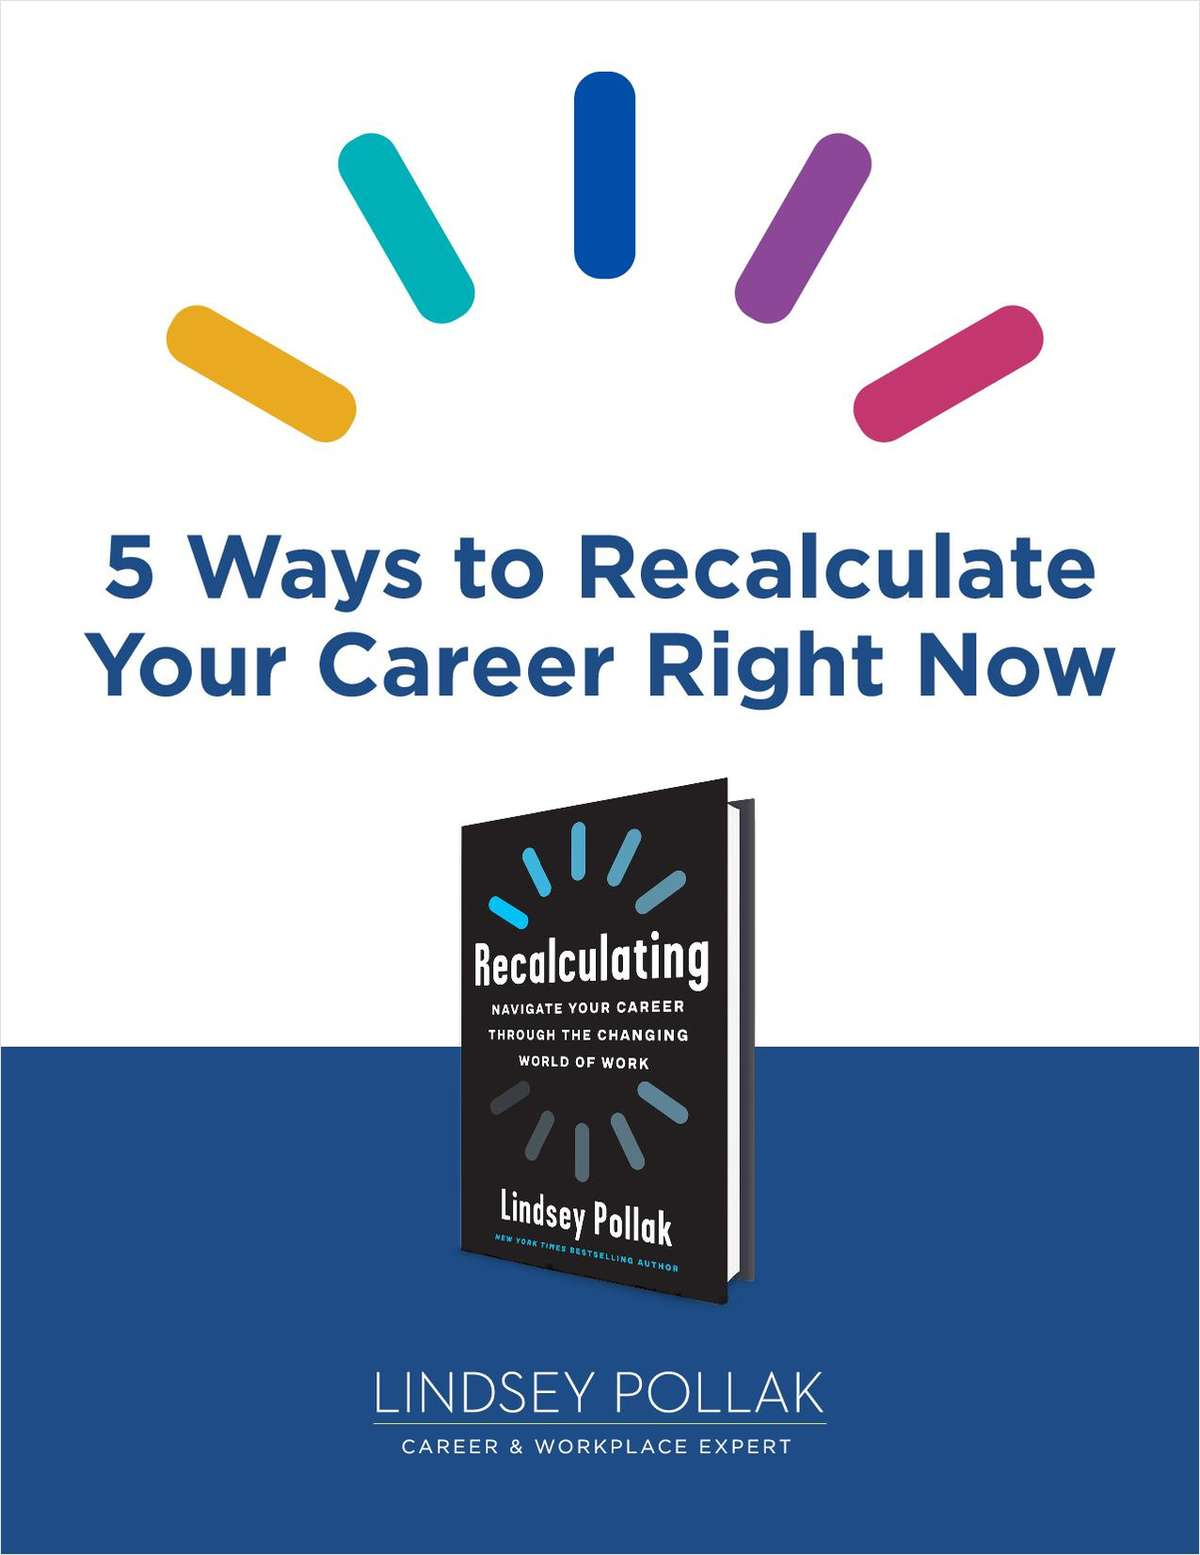 5 Ways to Recalculate Your Career Right Now